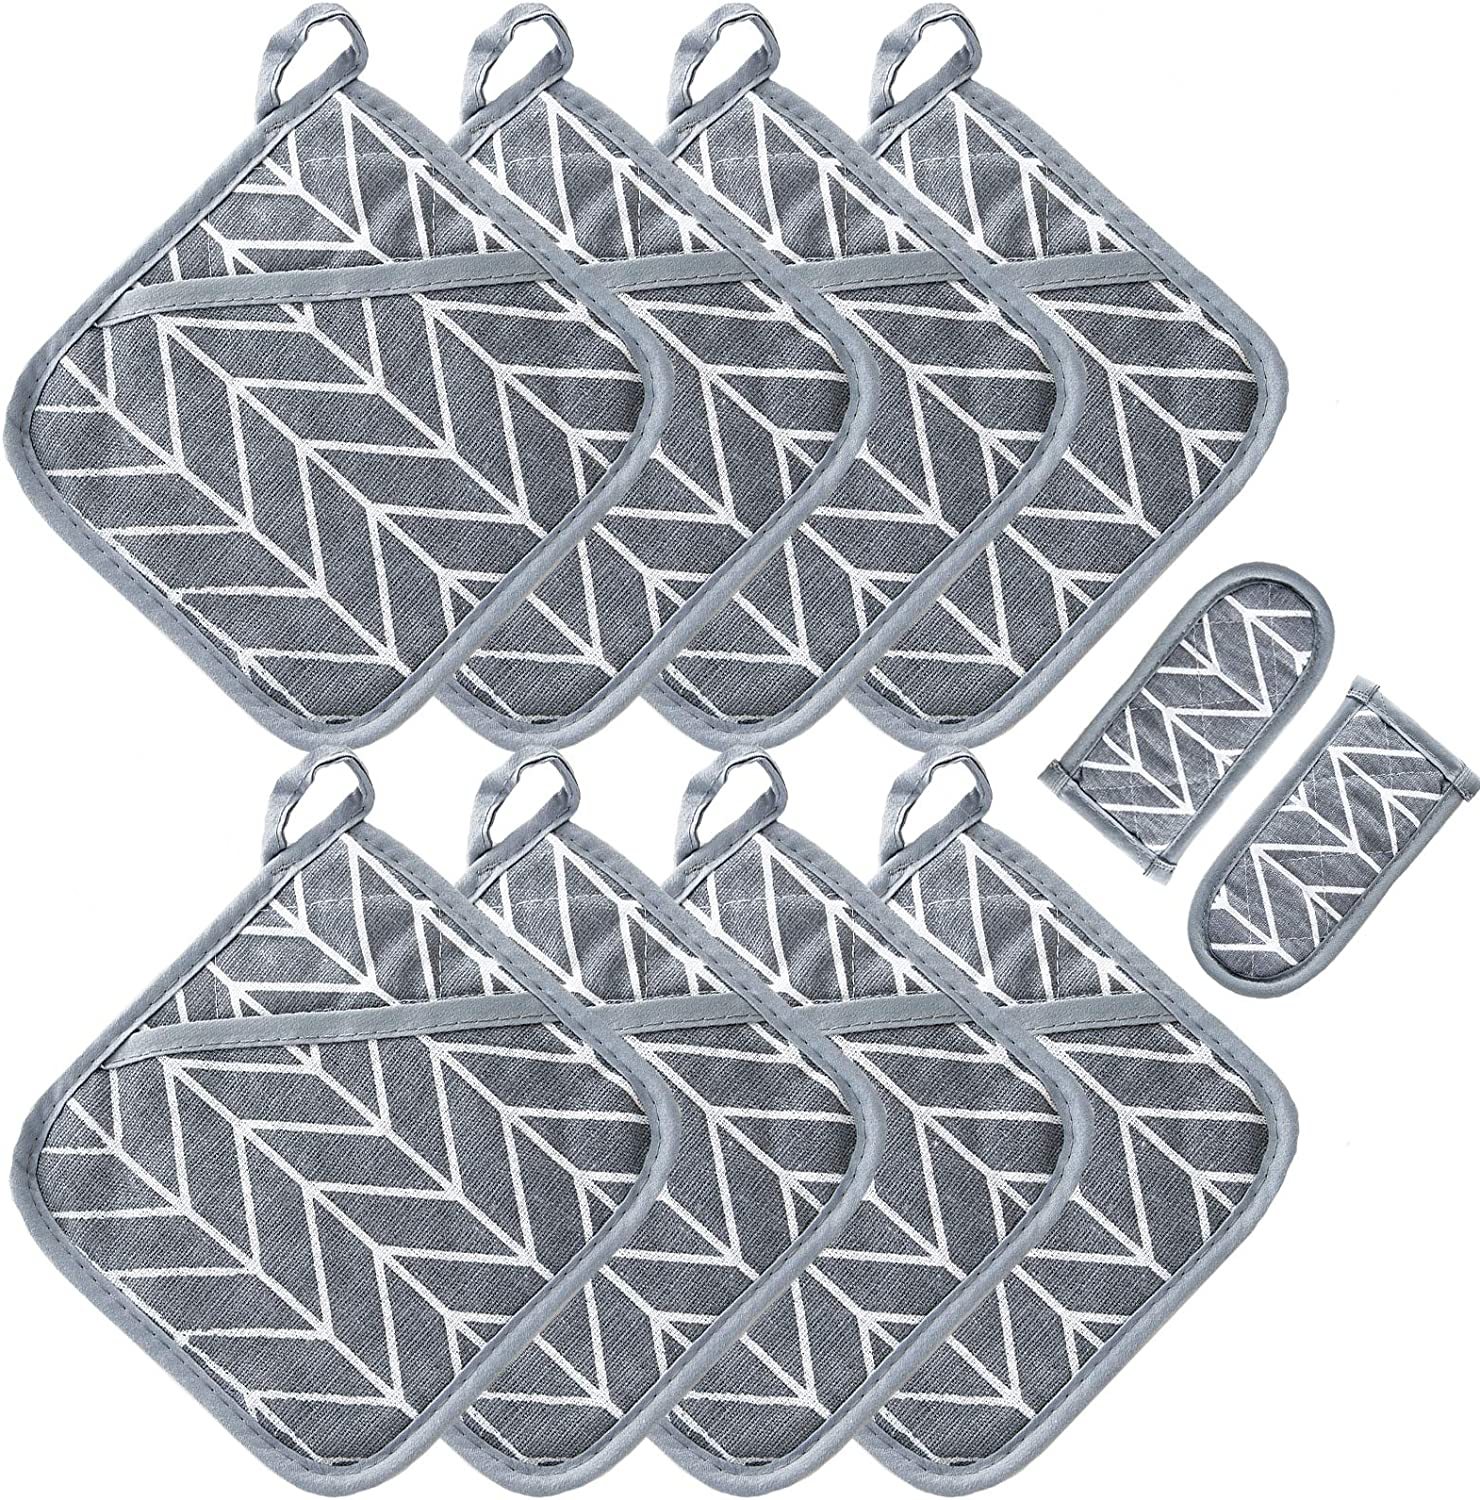 Win Change Heat Resistant Potholders Hot Pads-6 Kitchen Pot Holders Set with 2 Pan Hot Handle Holders Trivet for Cooking and Baking,with Recycled Cotton Infill Terrycloth Lining (Grey, 8+2)